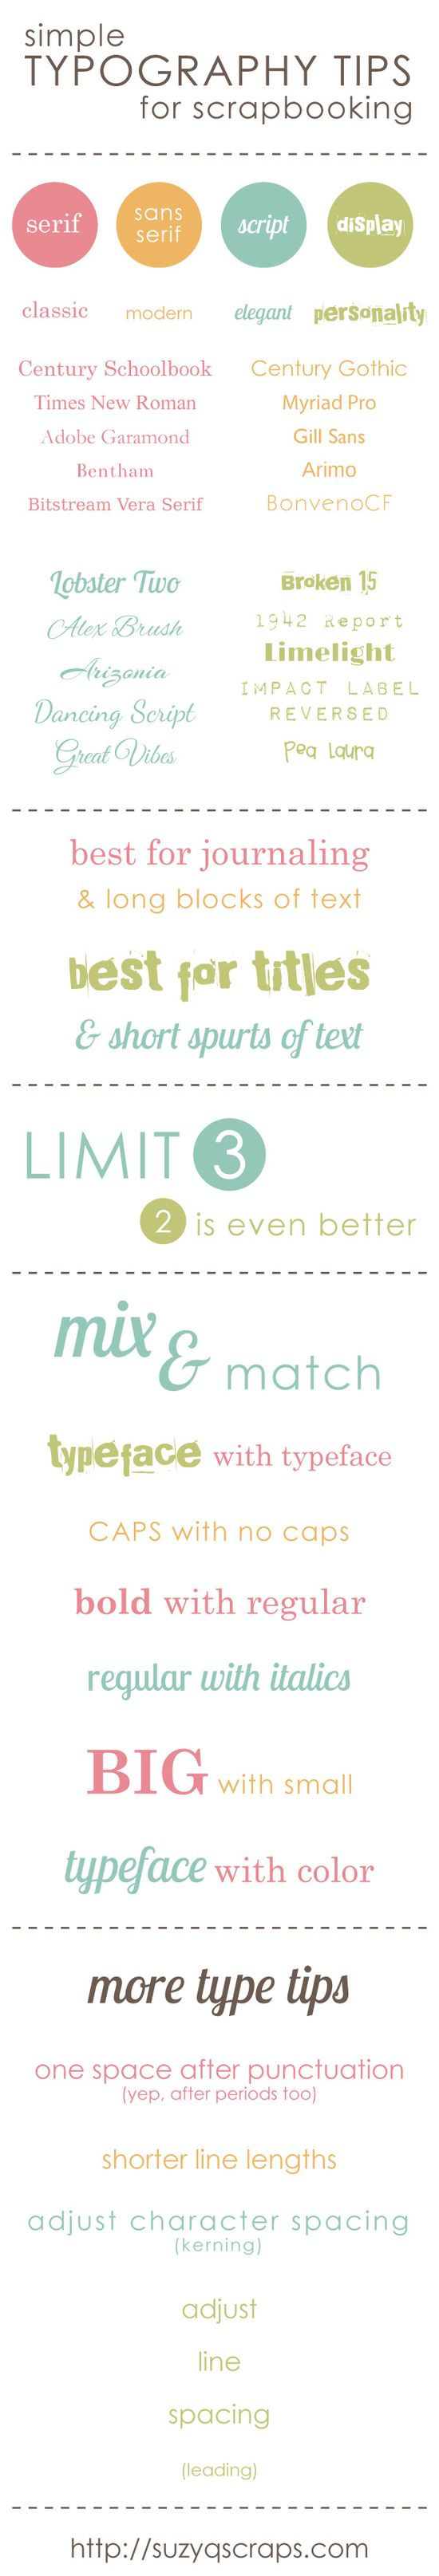 Simple Typography Tips for Scrapbooking